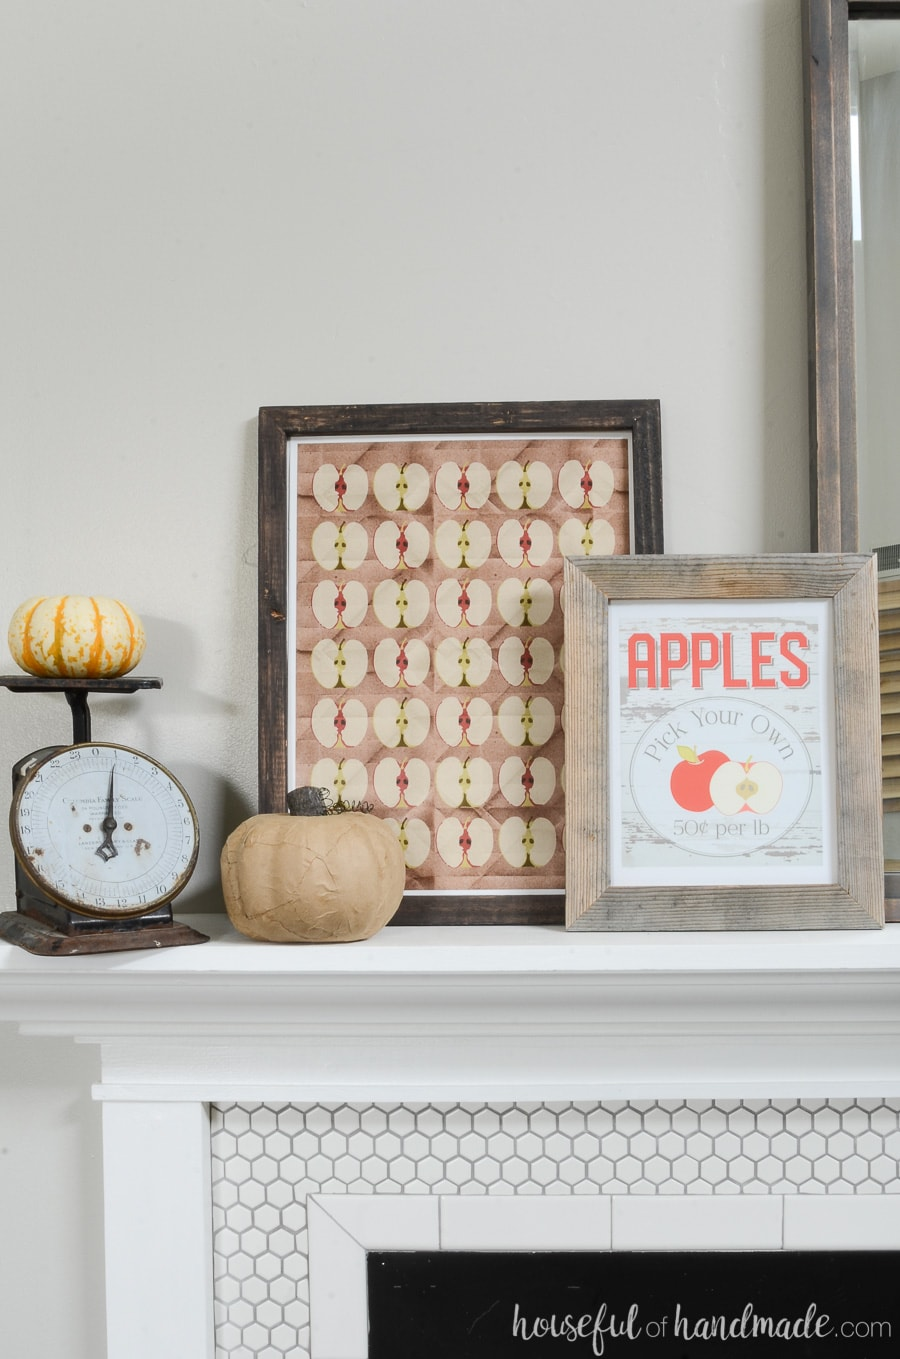 Two apple printables for fall in easy reclaimed wood picture frames next to a vintage scale. Perfect fall mantel decor.